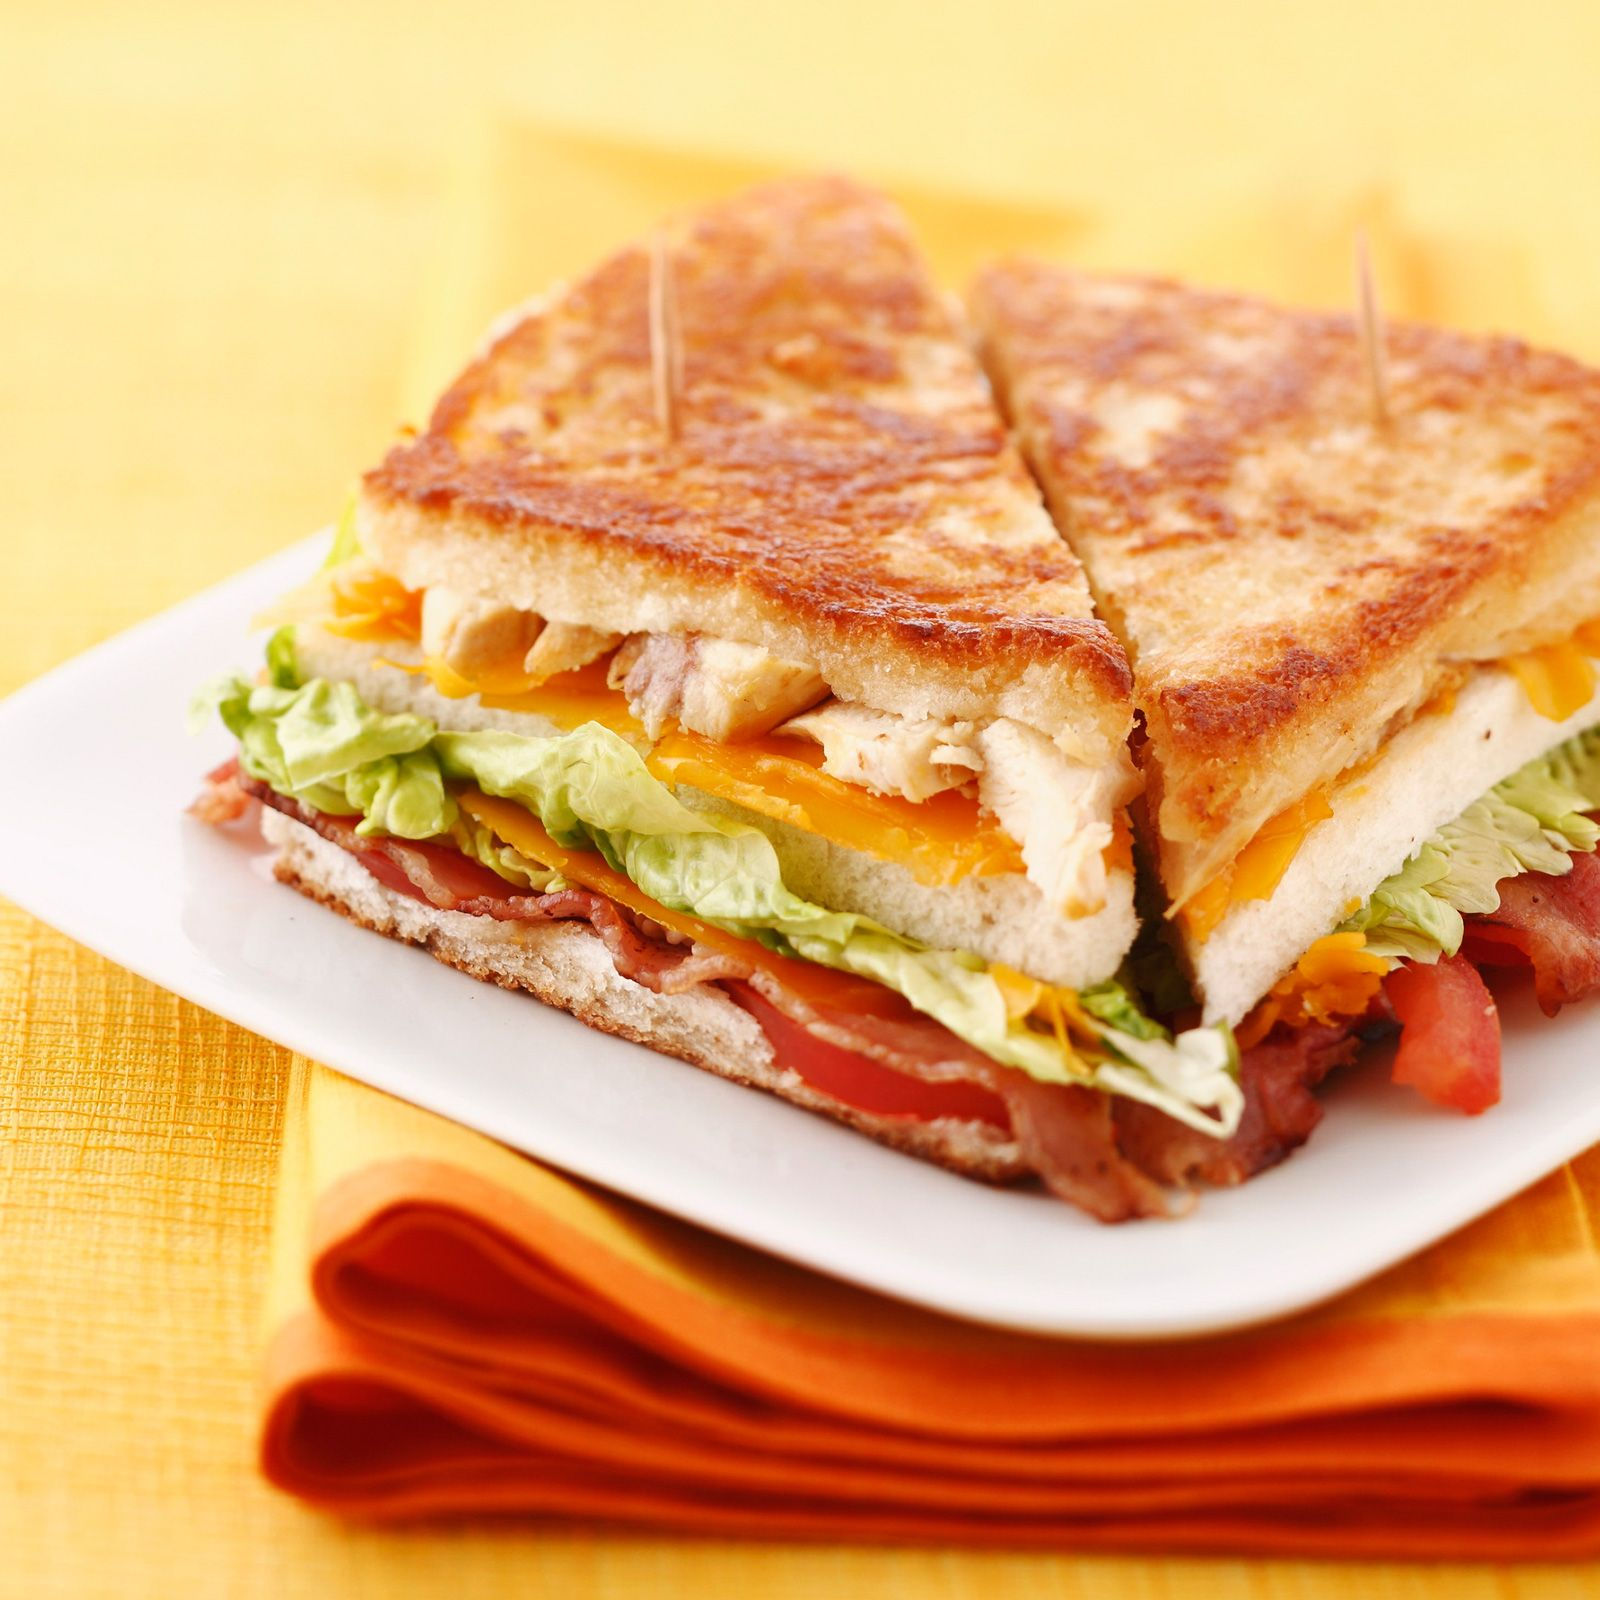 Club sandwich toast poulet cheddar bacon tomate recette bacon cheddar et sandwiches - Recette de sandwich froid ...